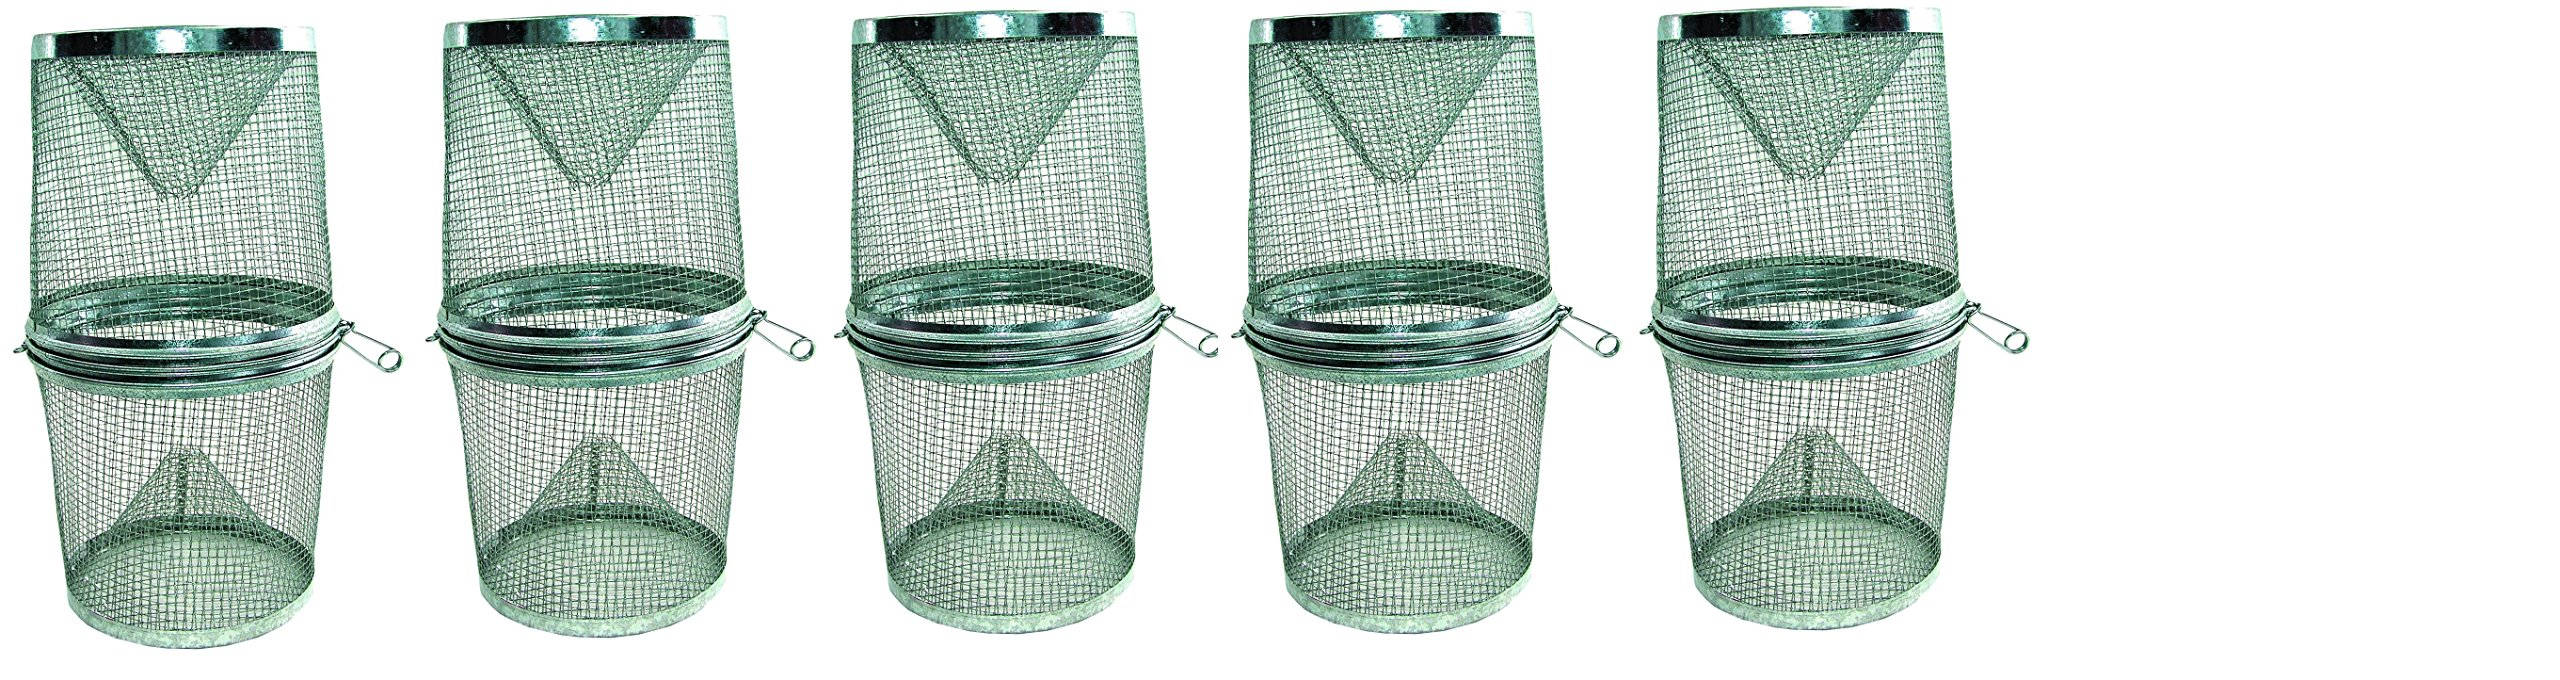 Gees Feets G-40 Minnow Trap (5 TRAPS) by Gees (Image #1)